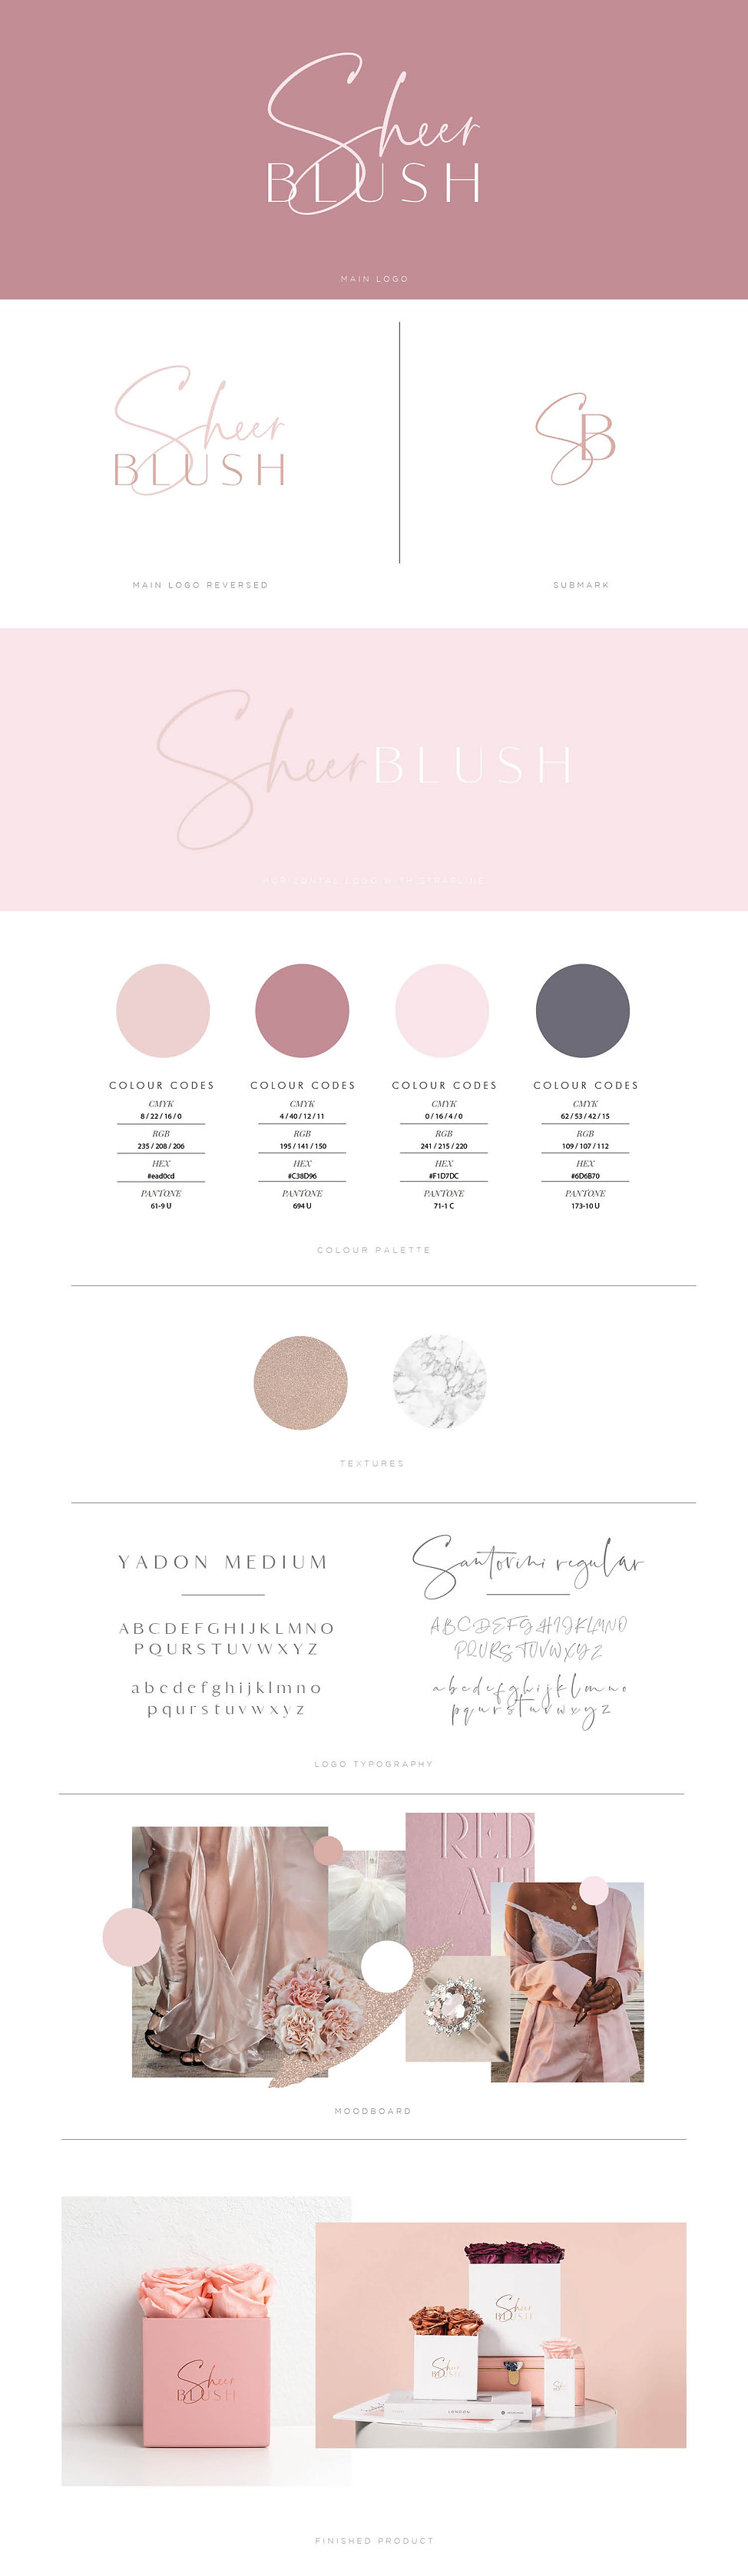 SHEER BLUSH Brand Guide.jpg